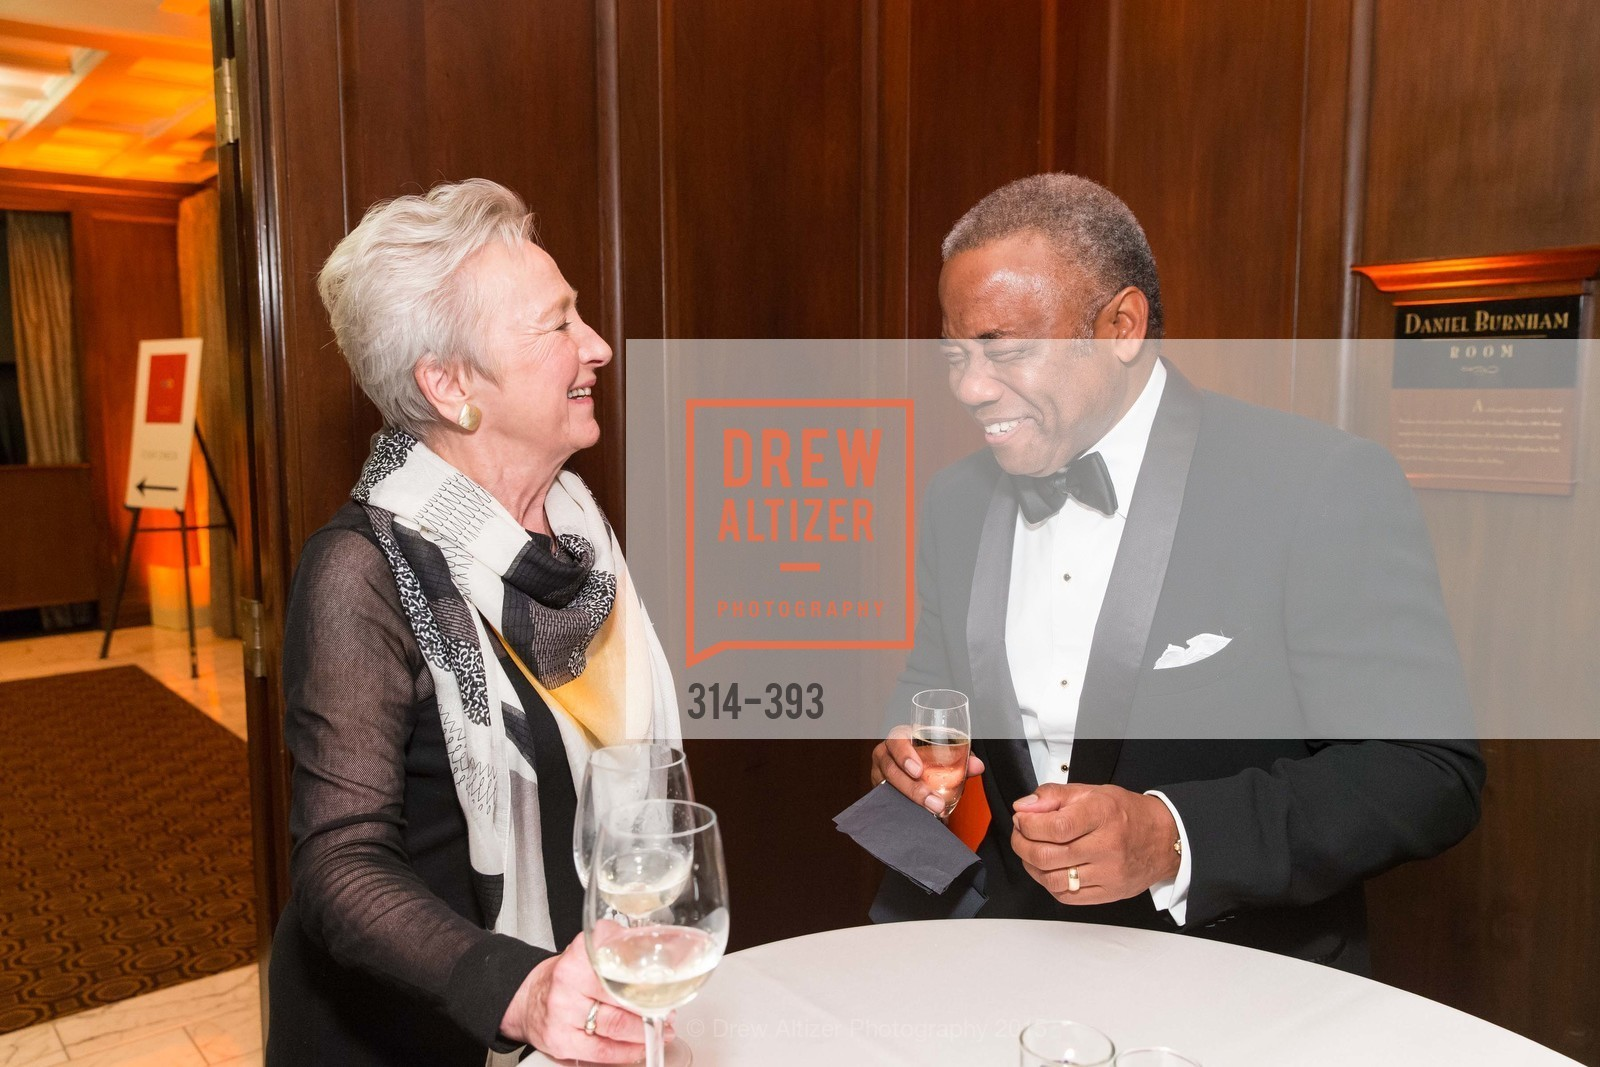 Ruth Felt, Victor Hymes, San Francisco Performances' 36th Season Gala, Merchants Exchange Building, Julia Morgan Ballroom. 465 California St, San Francisco, CA 94104, October 16th, 2015,Drew Altizer, Drew Altizer Photography, full-service agency, private events, San Francisco photographer, photographer california